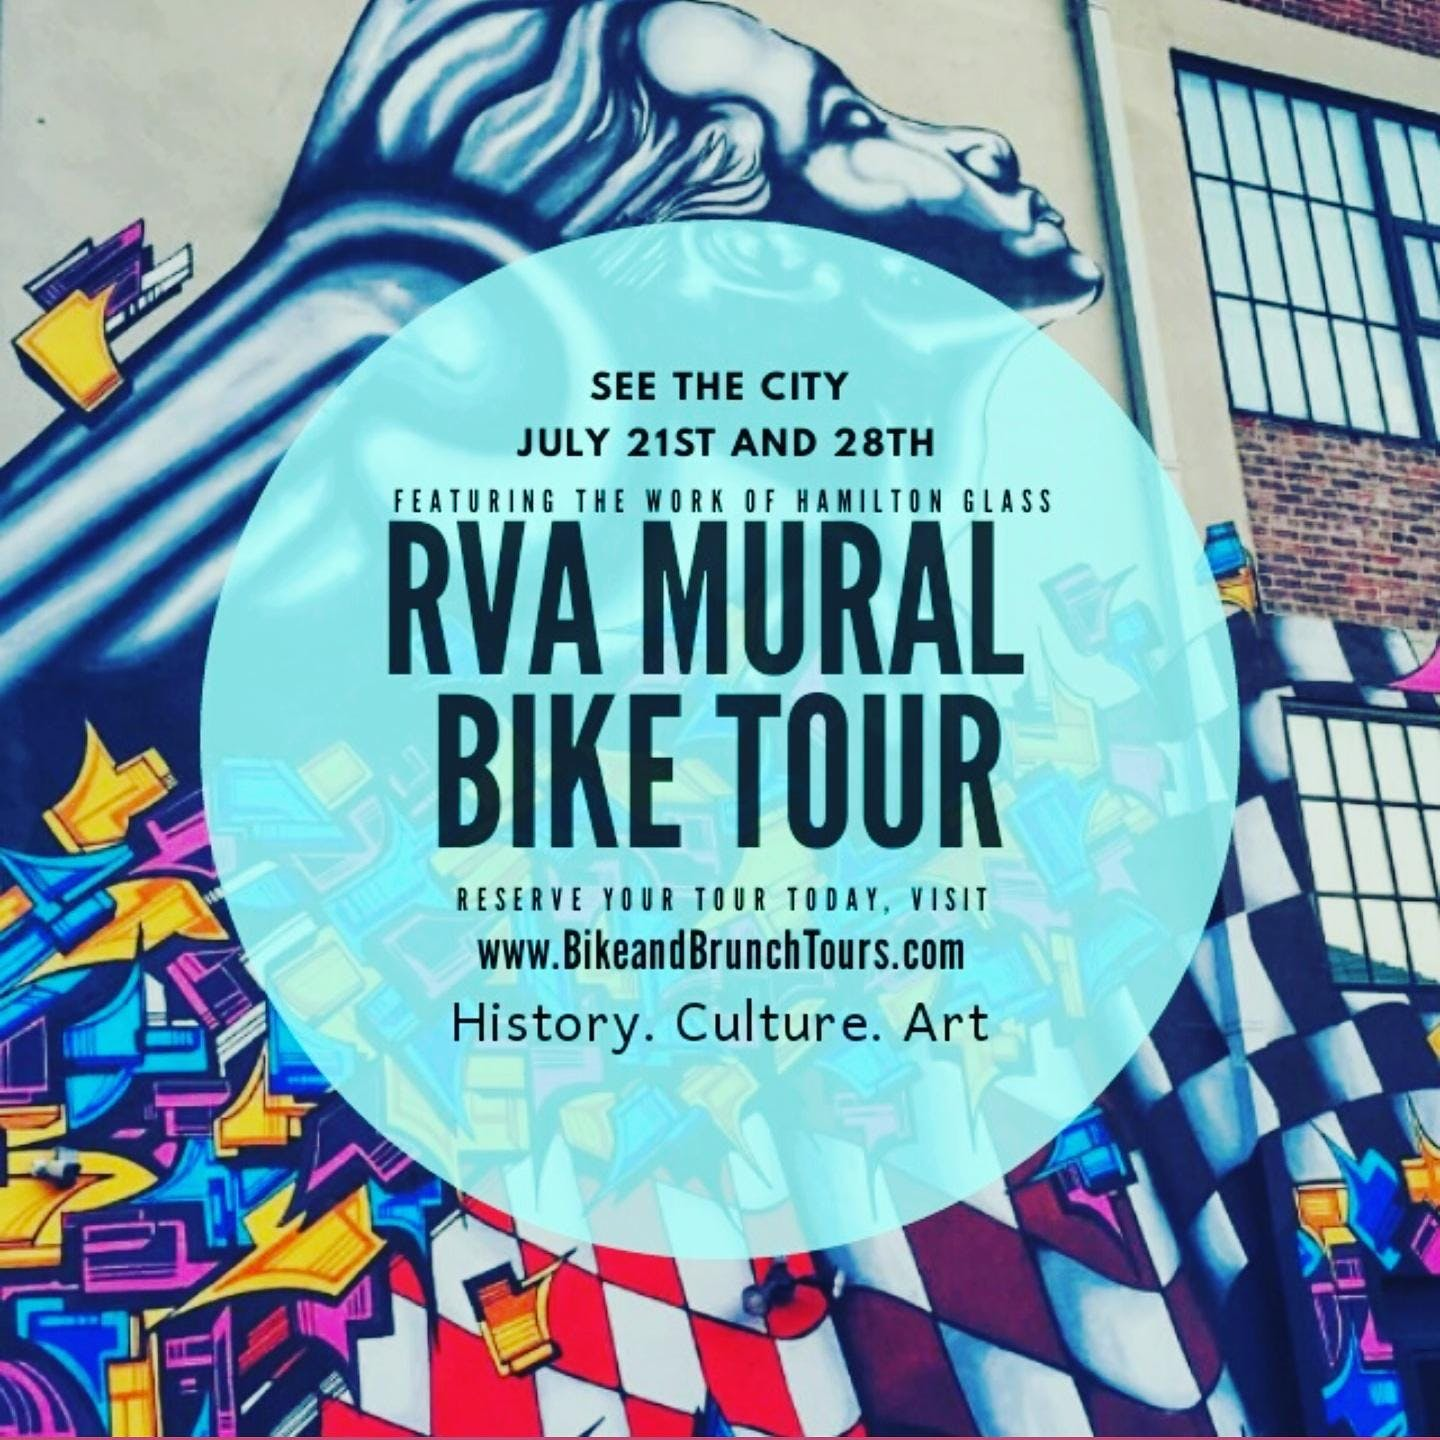 46d7630fa Bike   Brunch Tours  RVA Mural Bike Tour 2019 (June) - 22 JUN 2019